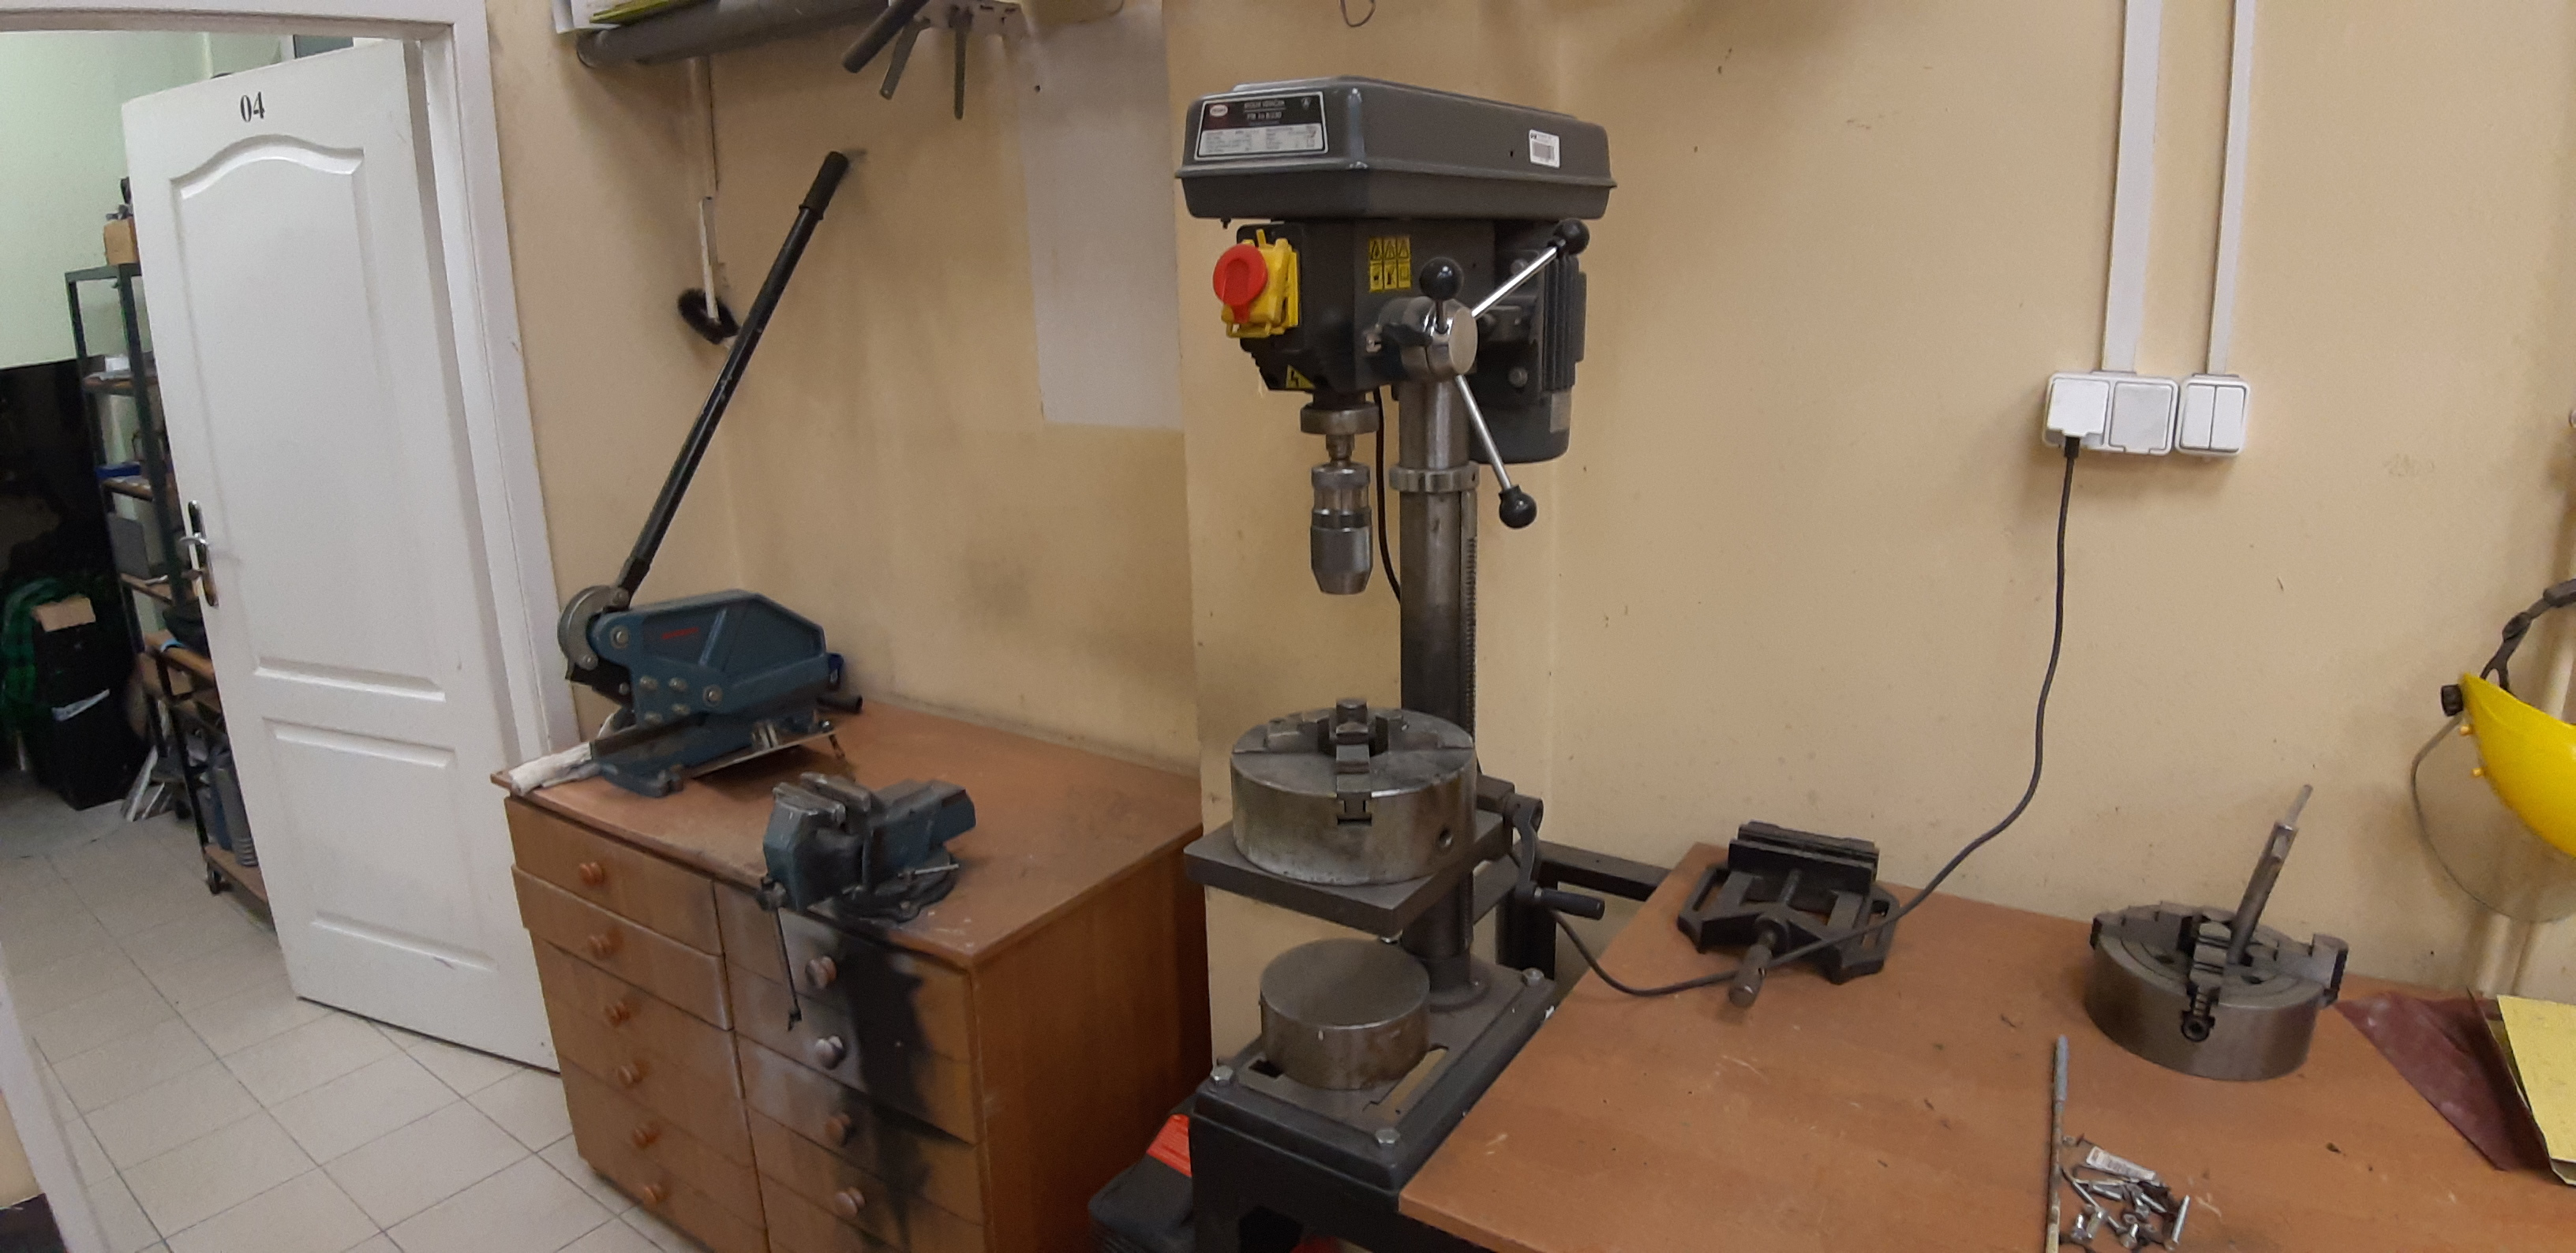 Manual drill machine in real-life